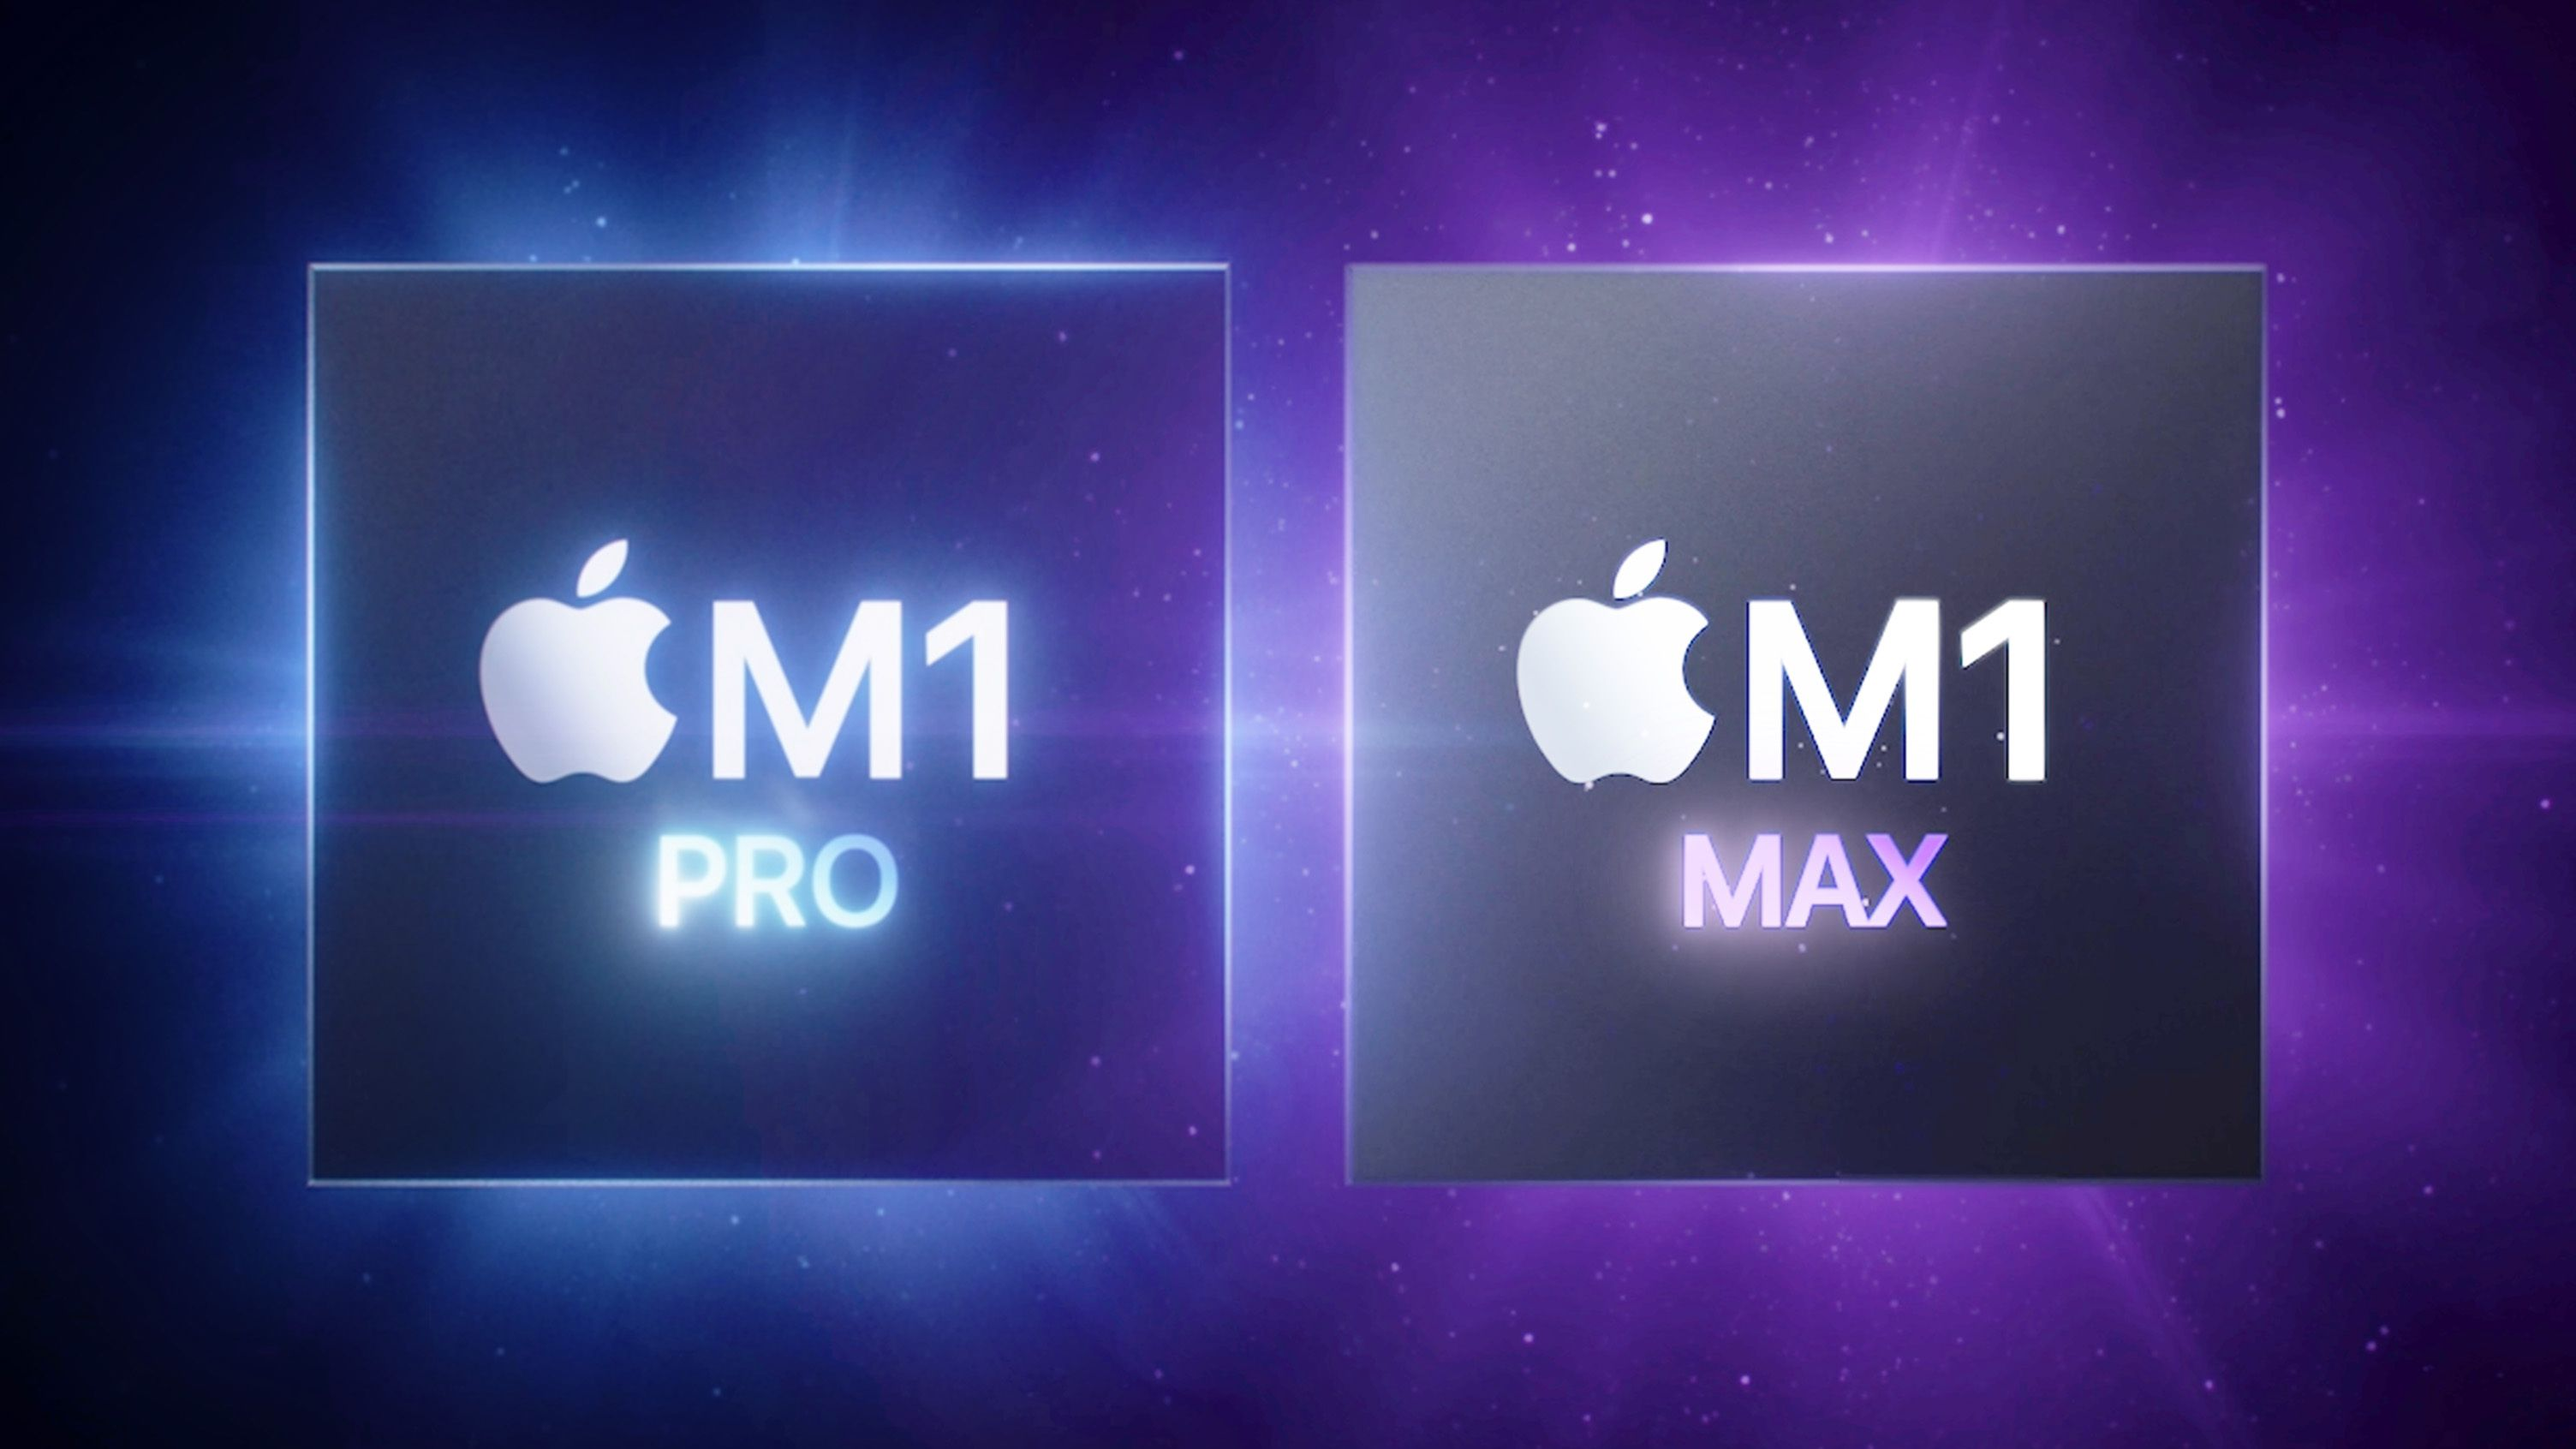 AnandTech's Deep Dive Into M1 Pro and M1 Max Highlights Performance and Efficiency Improvements - MacRumors